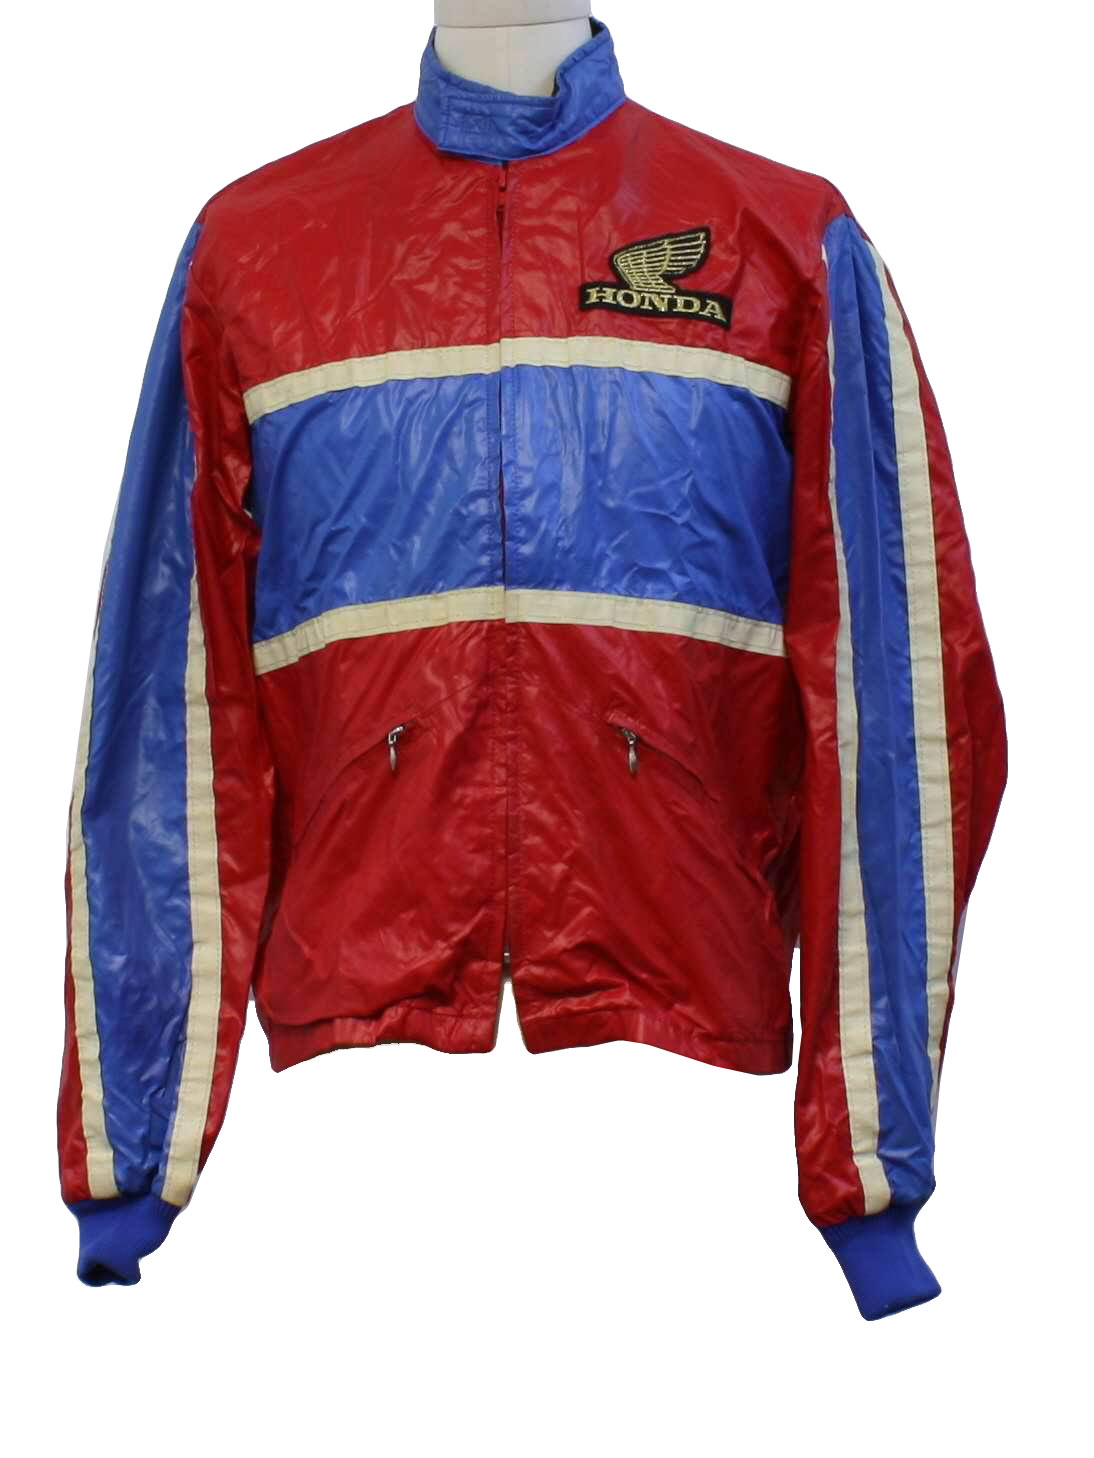 Vintage 80s Jacket 80s Hondaline Mens red white and